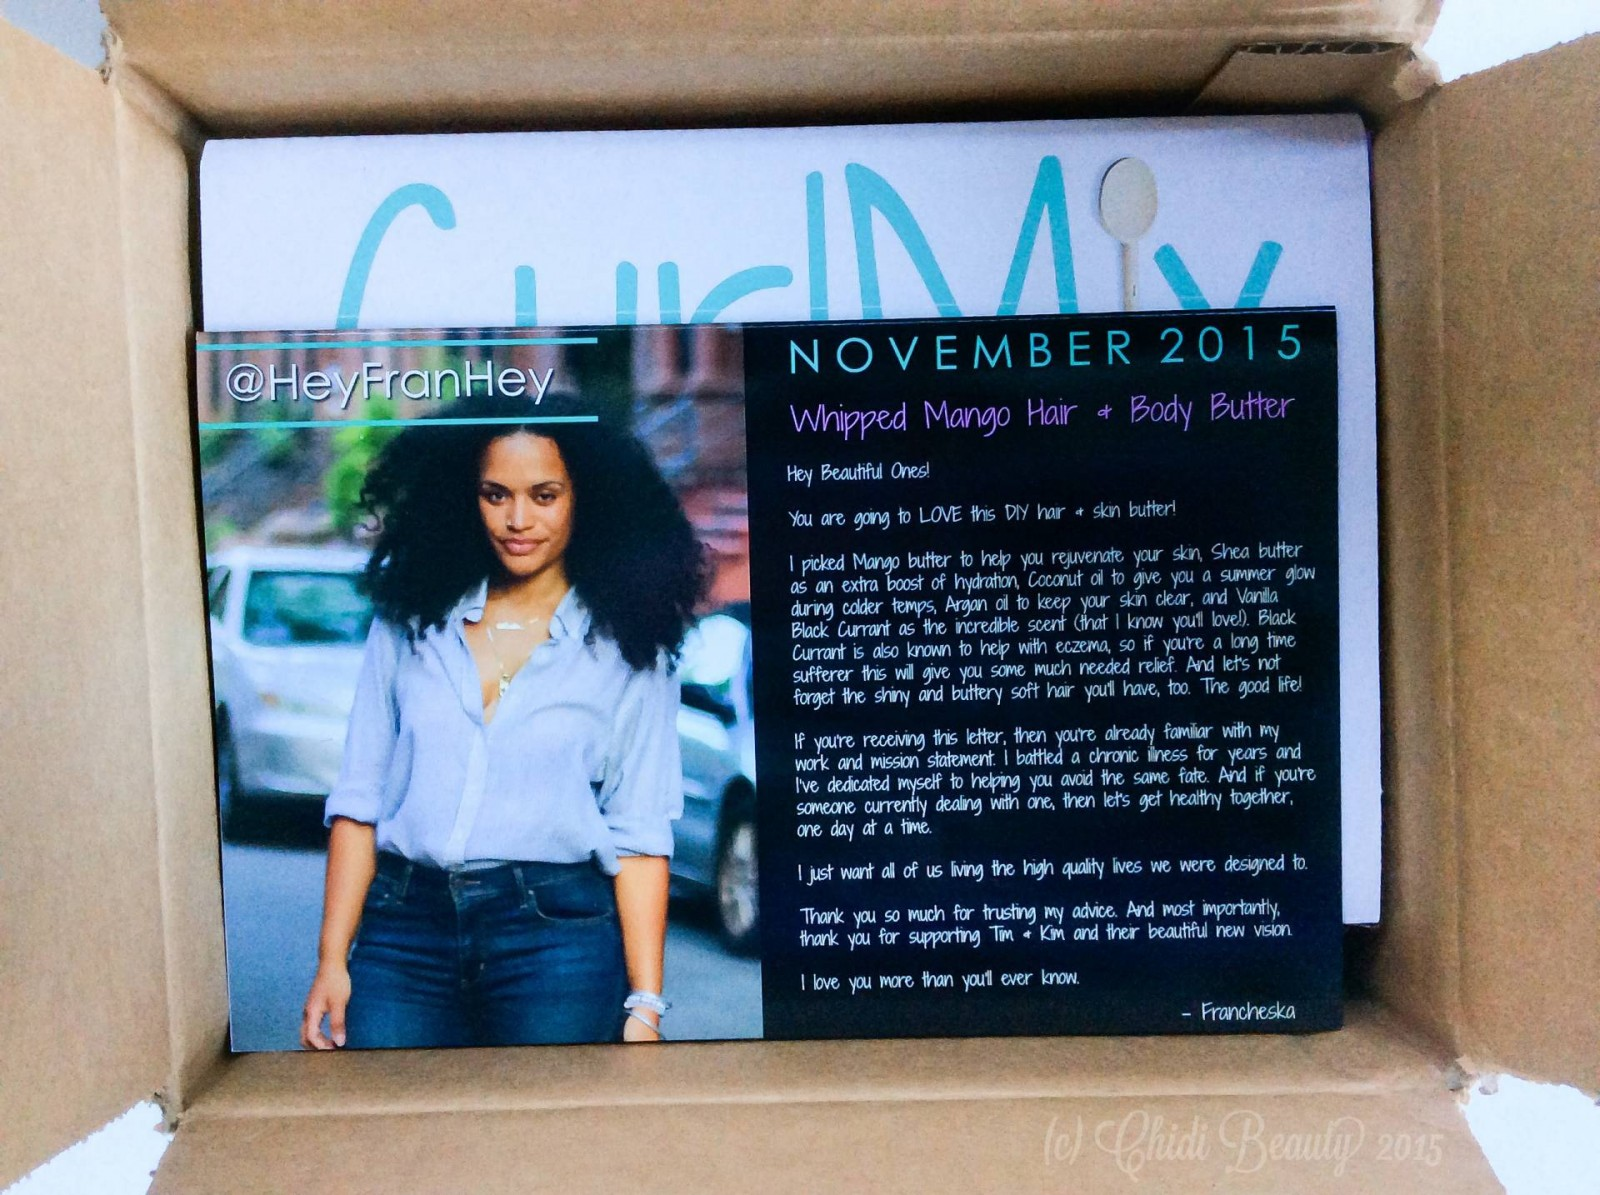 CurlMix Subscription Box - November 2015 HeyFranHey Letter